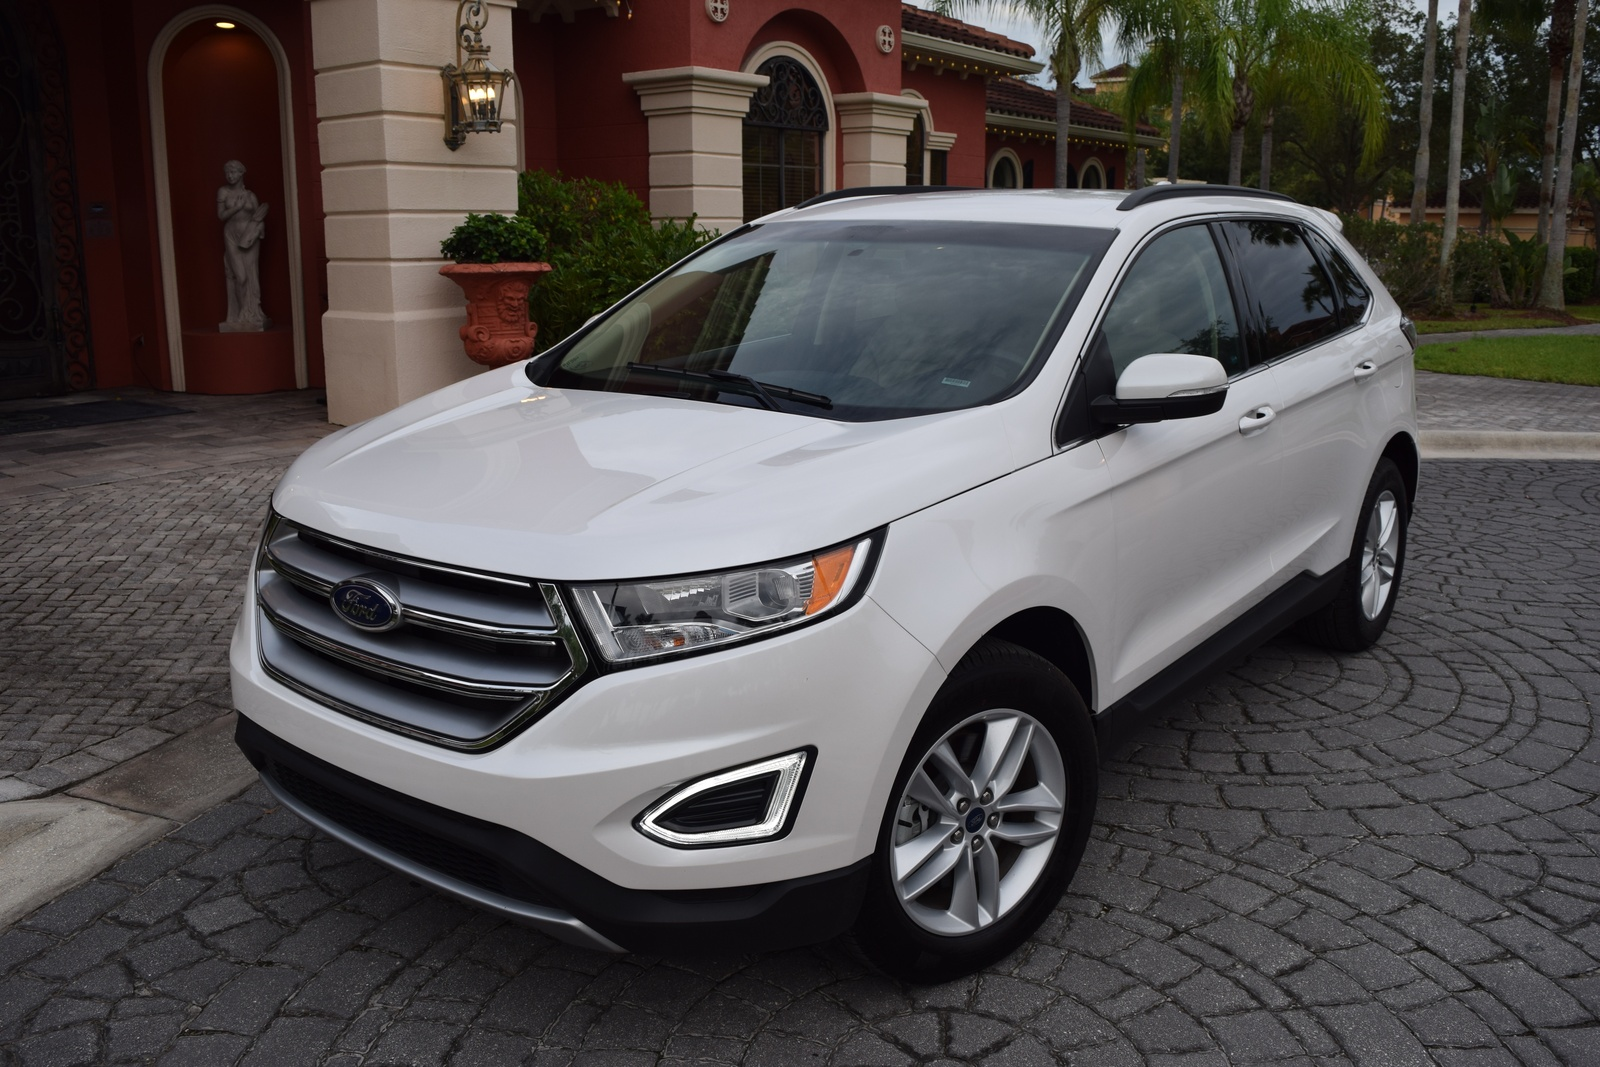 new 2015 2016 ford edge for sale cargurus. Black Bedroom Furniture Sets. Home Design Ideas